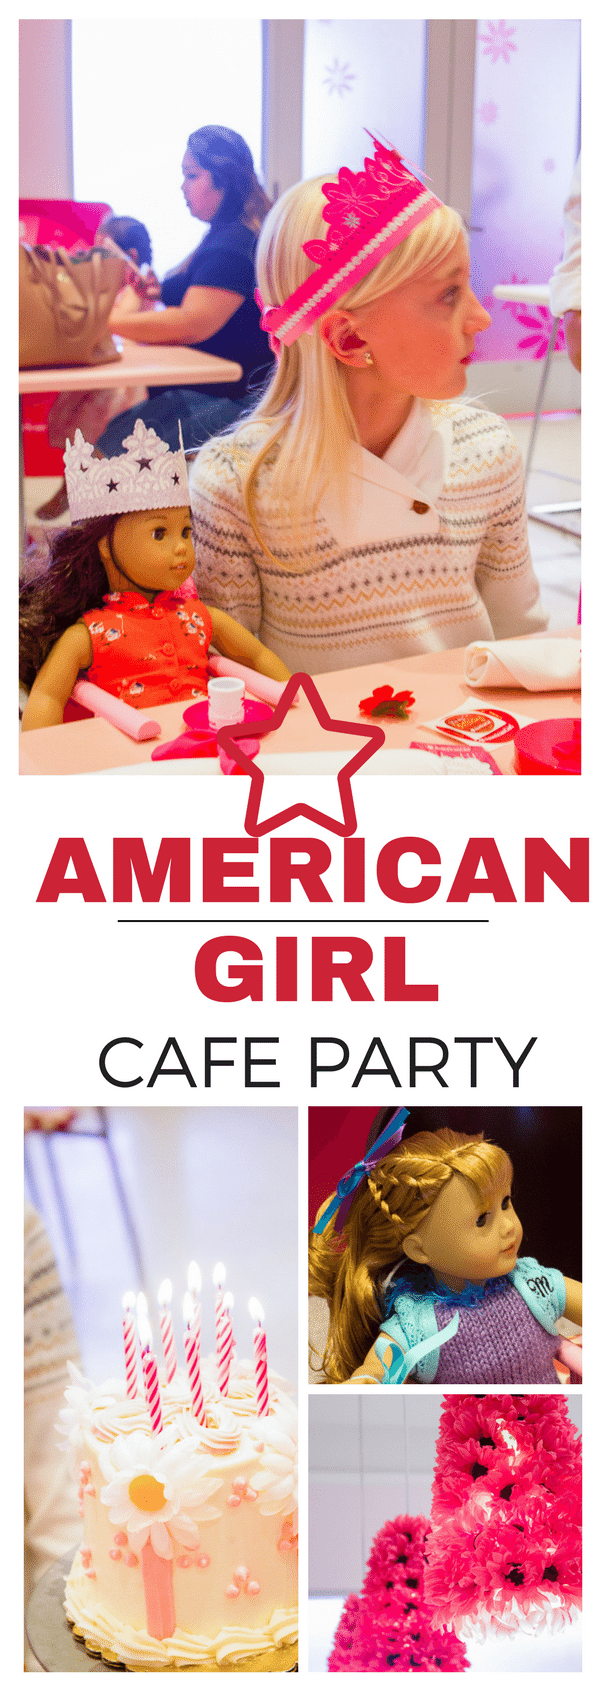 American Girl Cafe Birthday Party  TINSELBOX